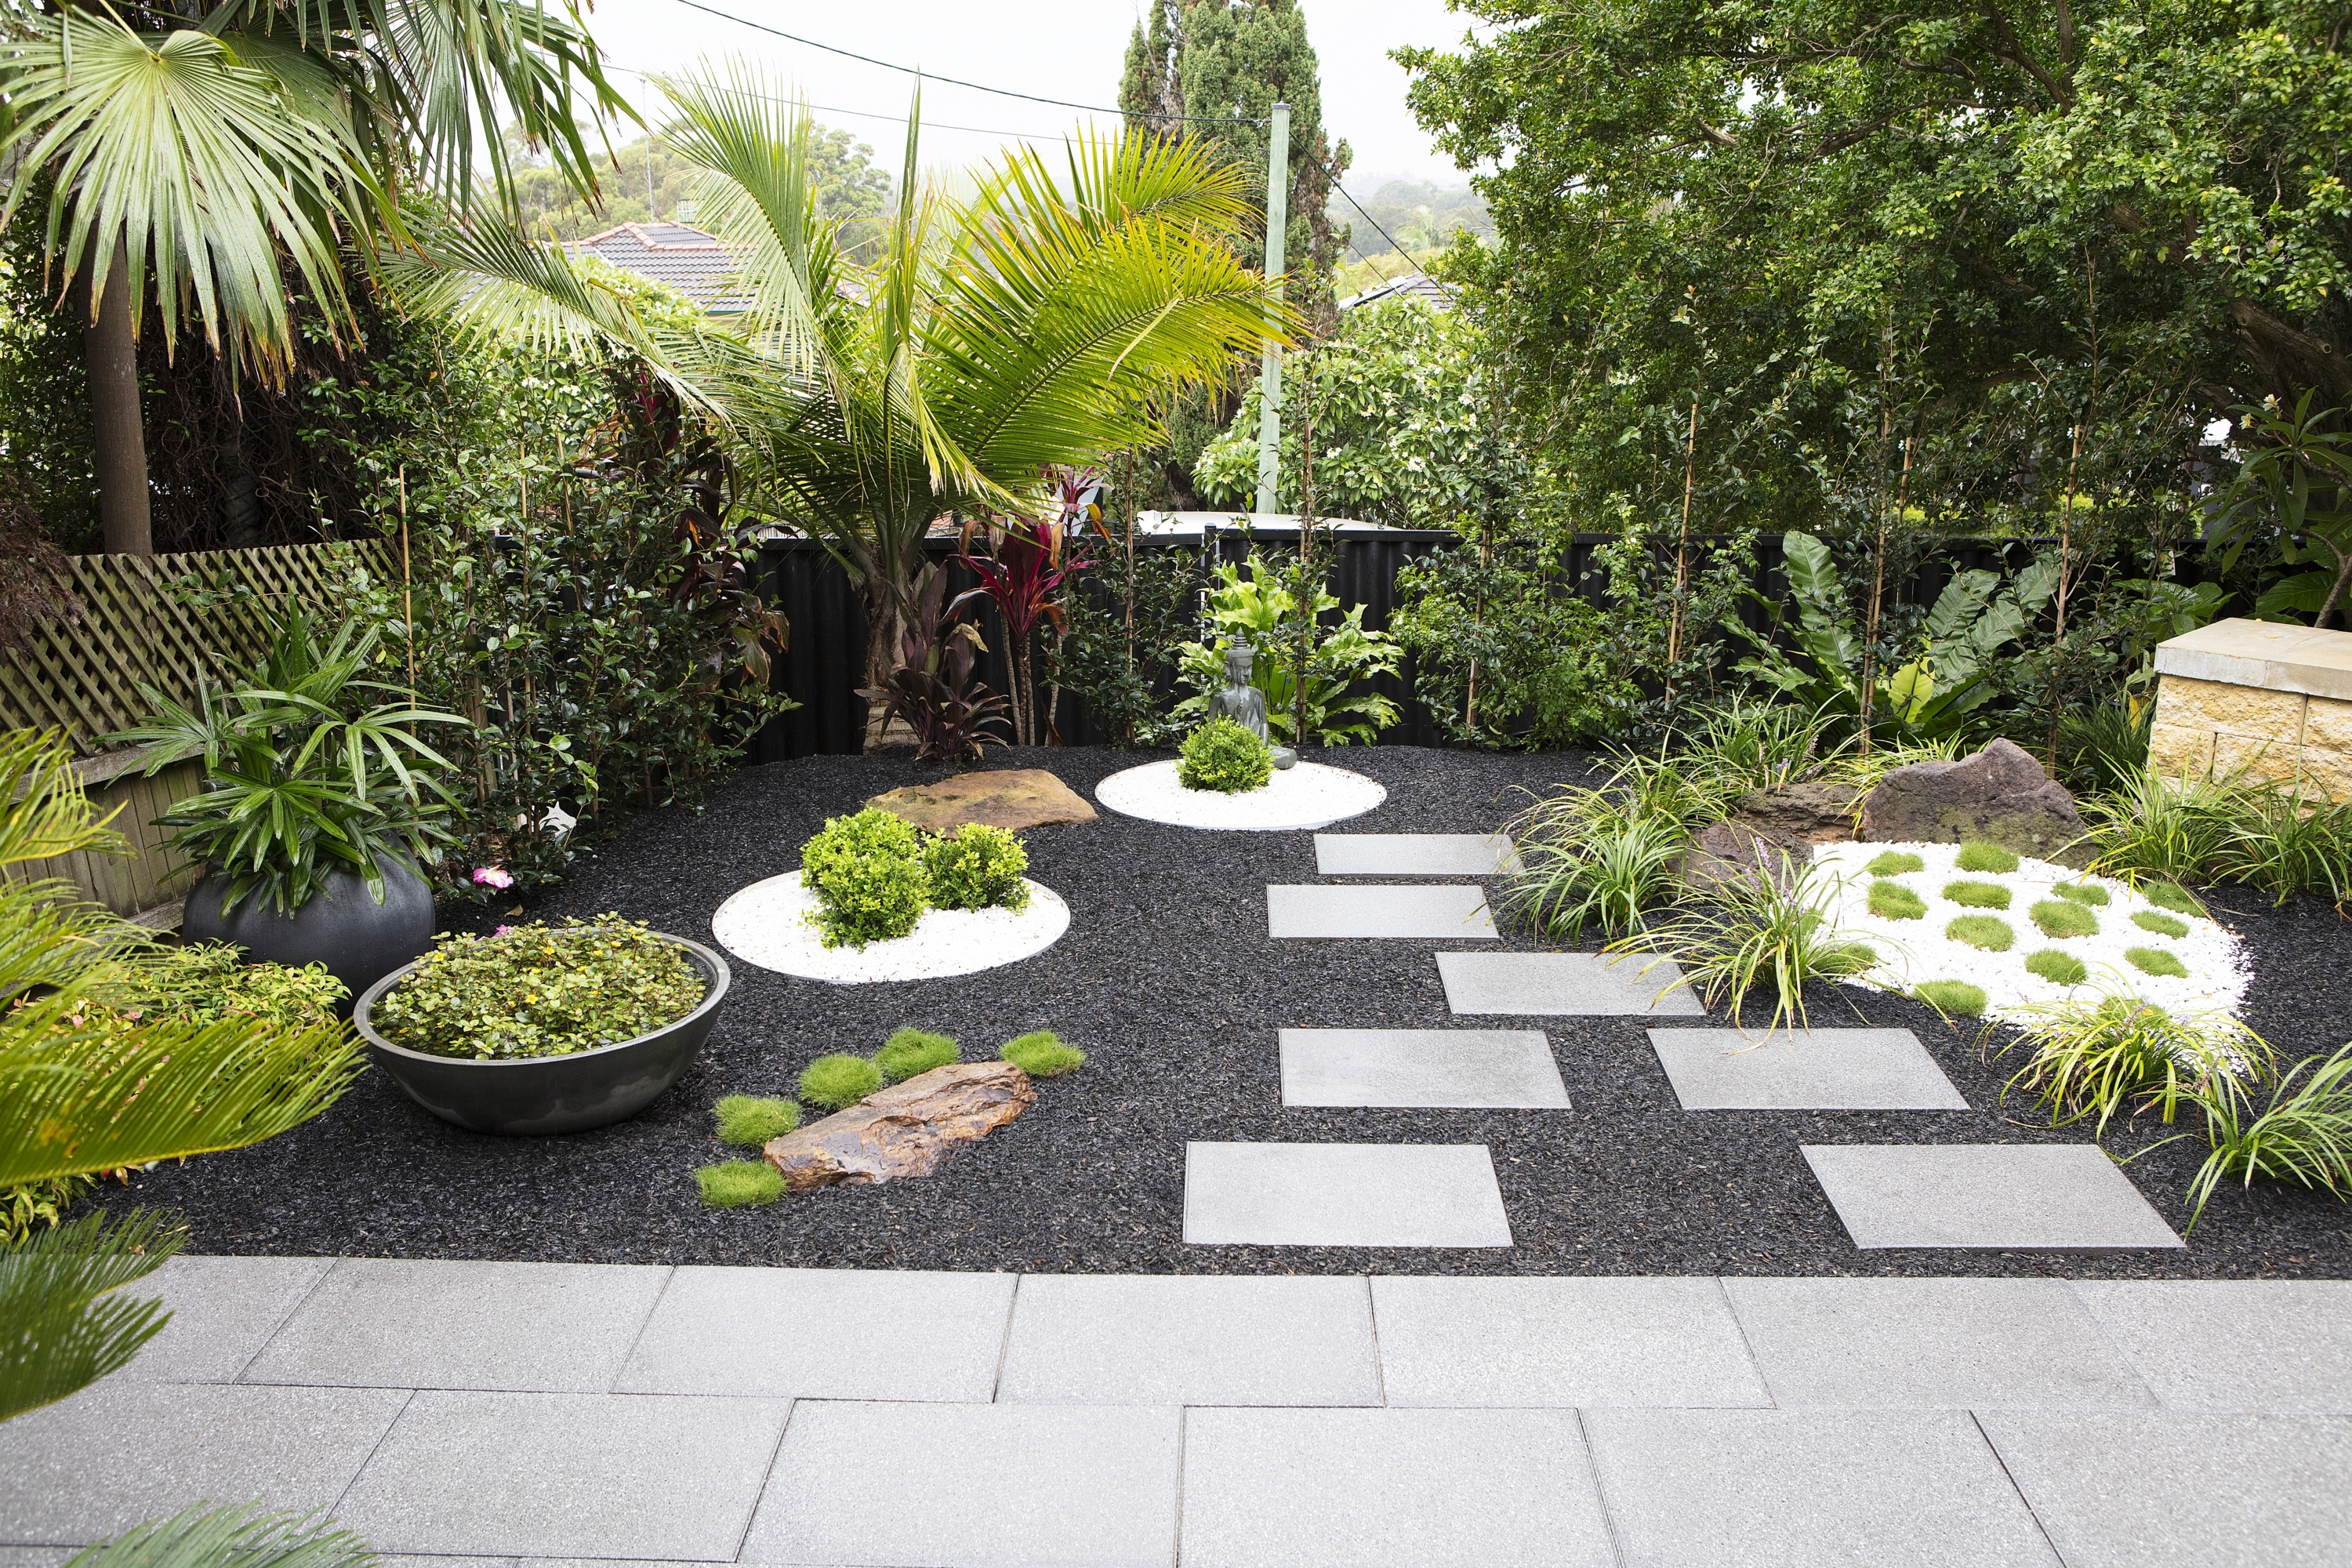 Aussie Backyards Inspired By Overseas Holiday Spots - The Interiors regarding Zen Garden Design Balls